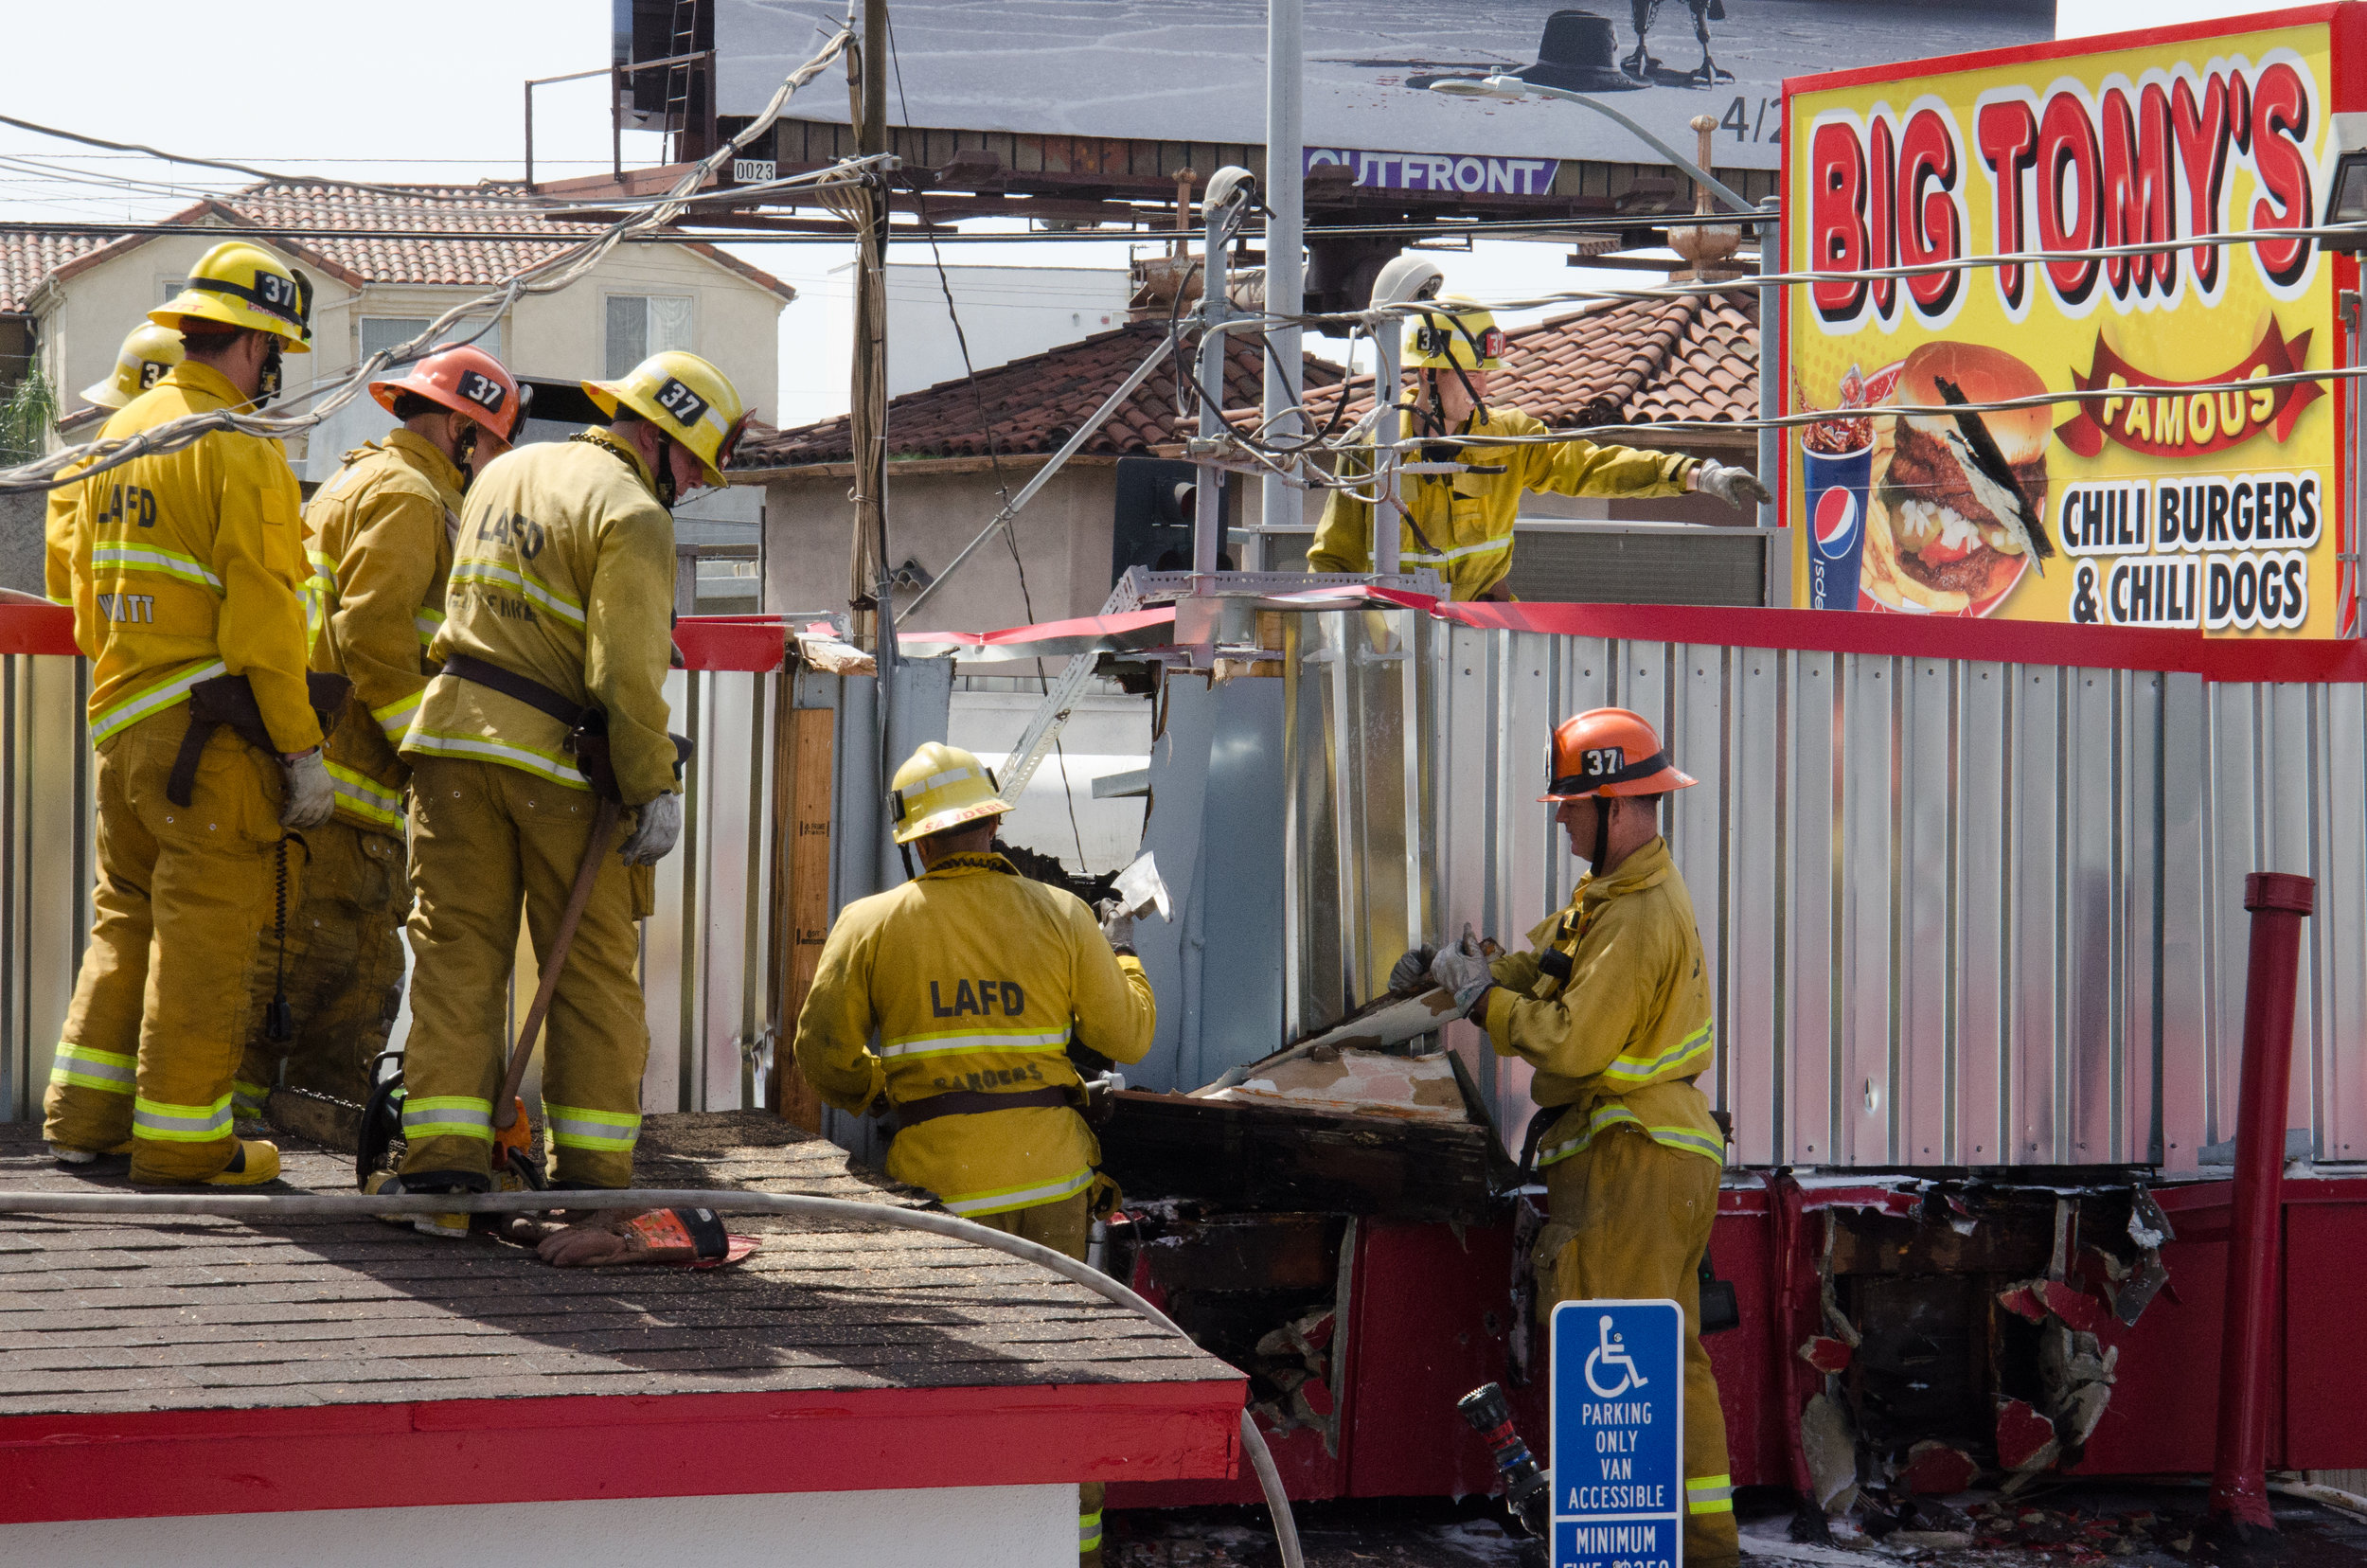 LAFD Firefighters from Station 37 demolish part of the roof of Big Tomy's Hamburgers at the corner of Pico and Sawtelle in Santa Monica, California in order to fight a fire burning within the restaurant's wall. April 6th, 2018 (Reed Curtis/Corsair Photo)